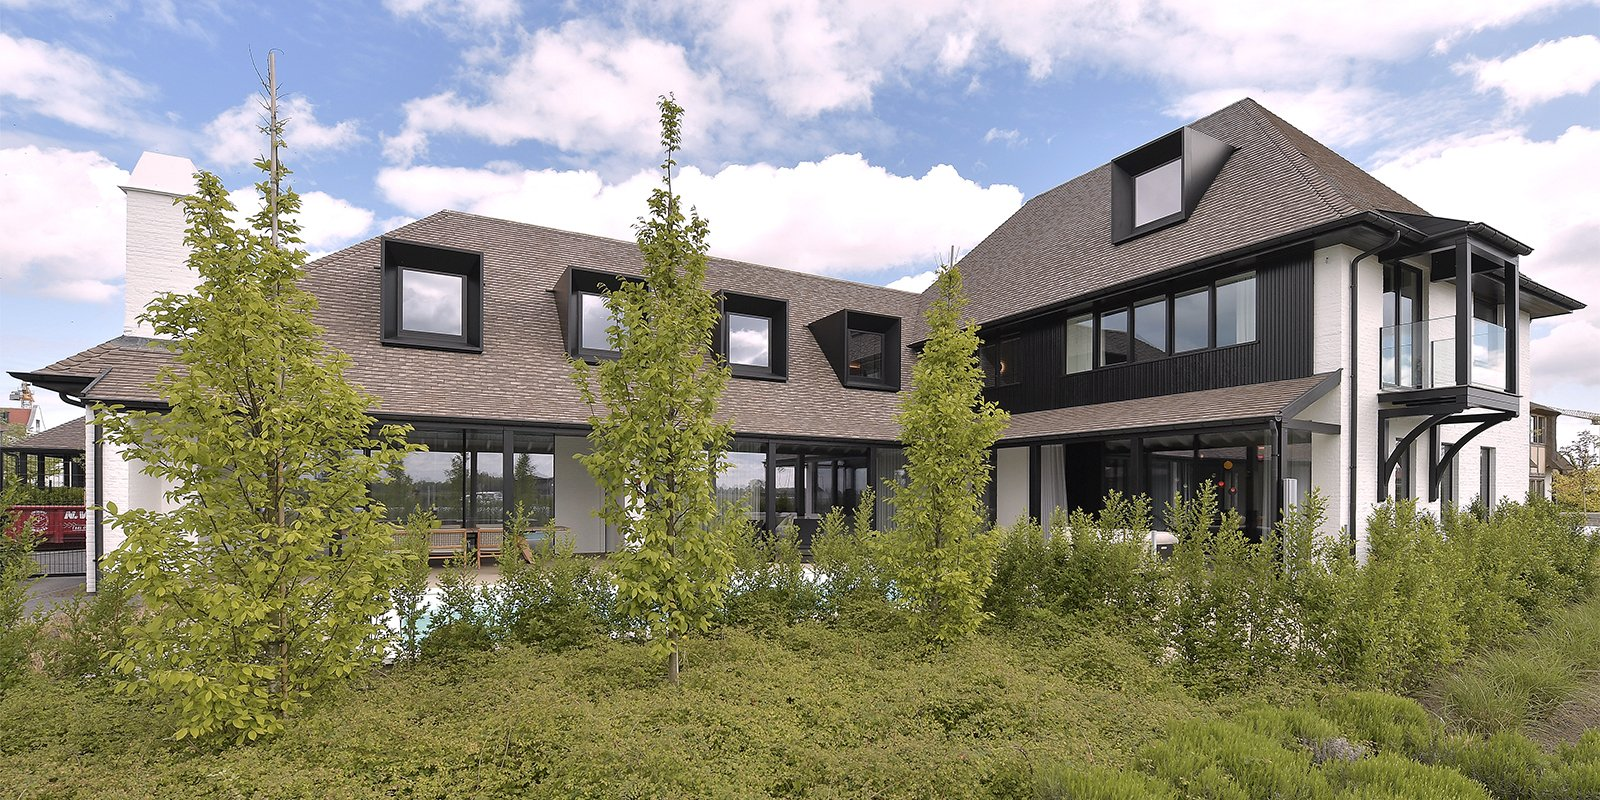 Strandvilla, ingetogen vormgeving, Arcas, the art of living, Arcas Architecture & Urbanism